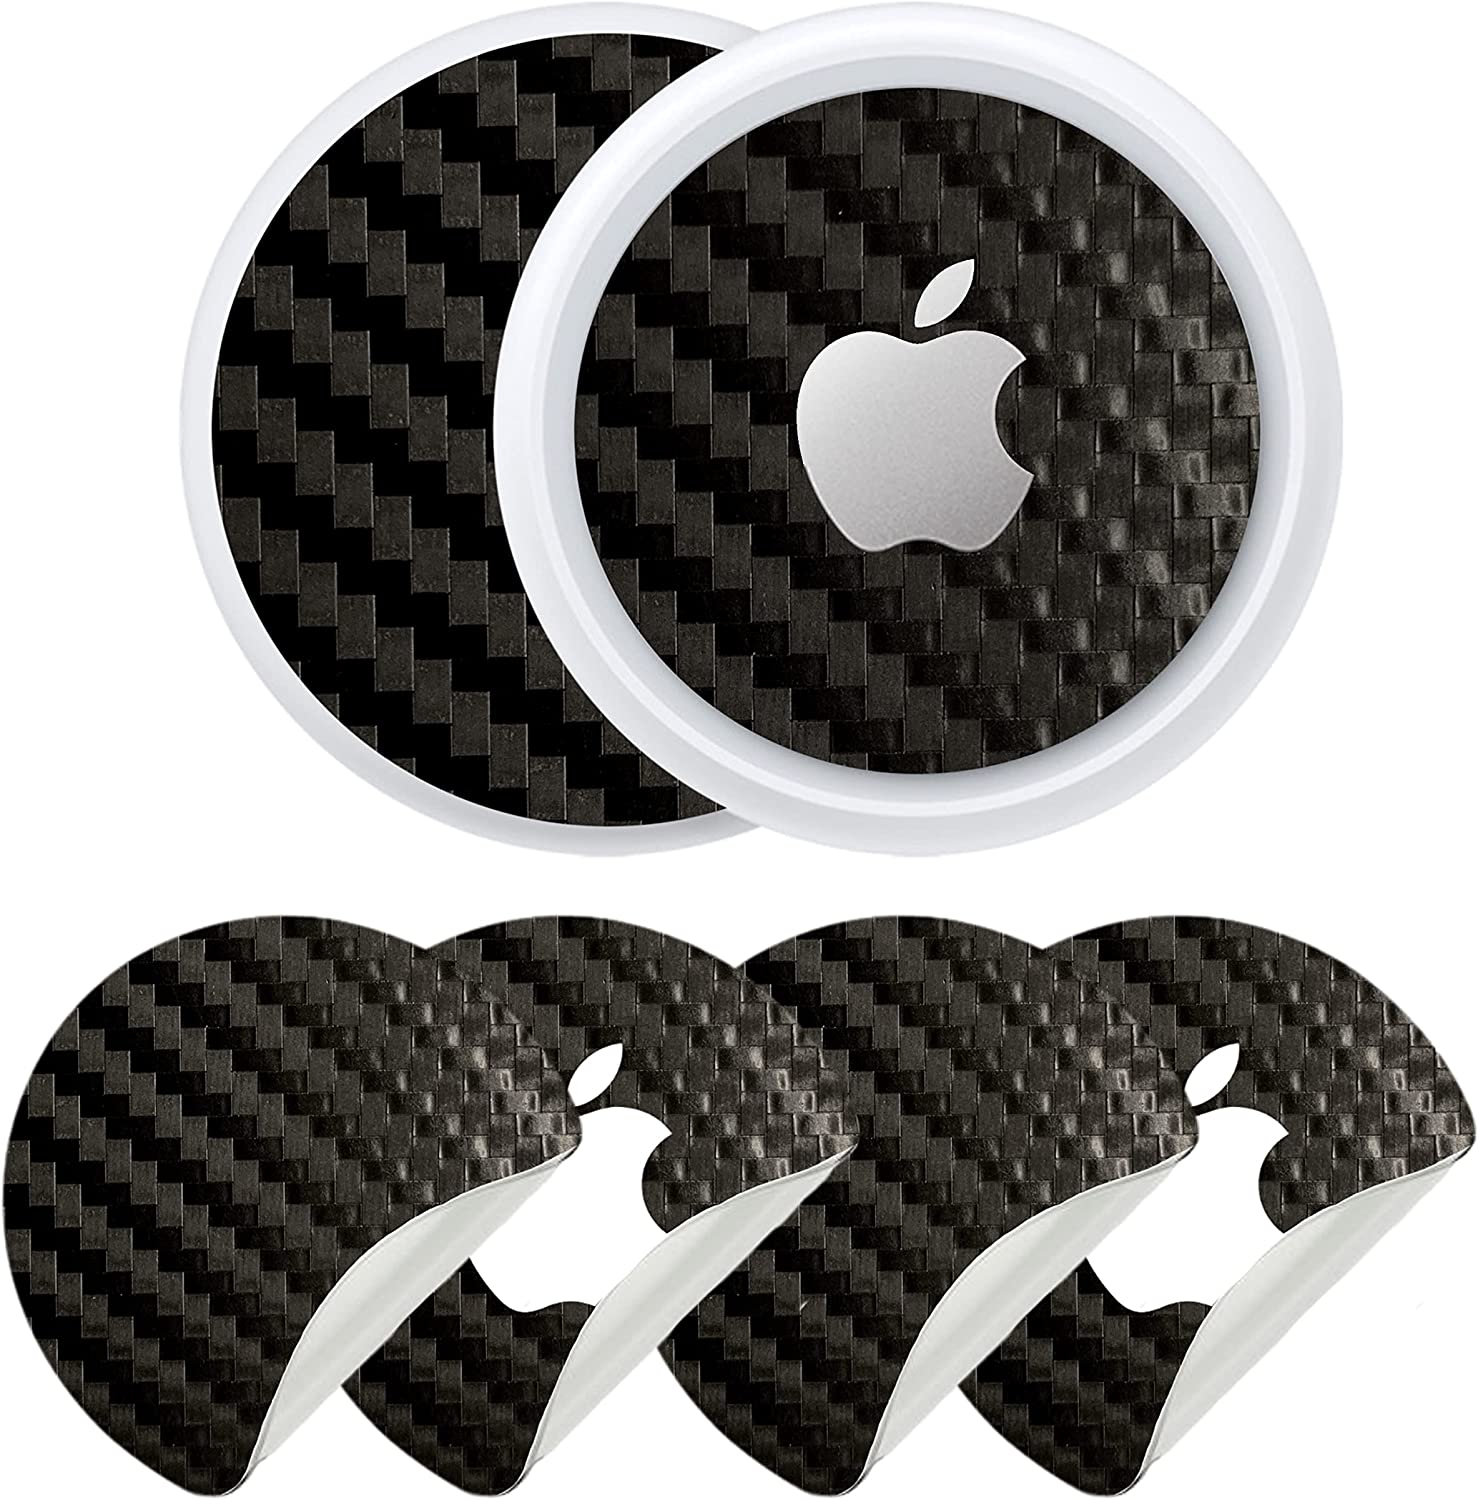 2PK Carbon Fiber Skin for Airtags | Fits with Airtag Cases (Not Included), Keychains, Loops, Holders | Stylish, Anti-Scratch, Protective